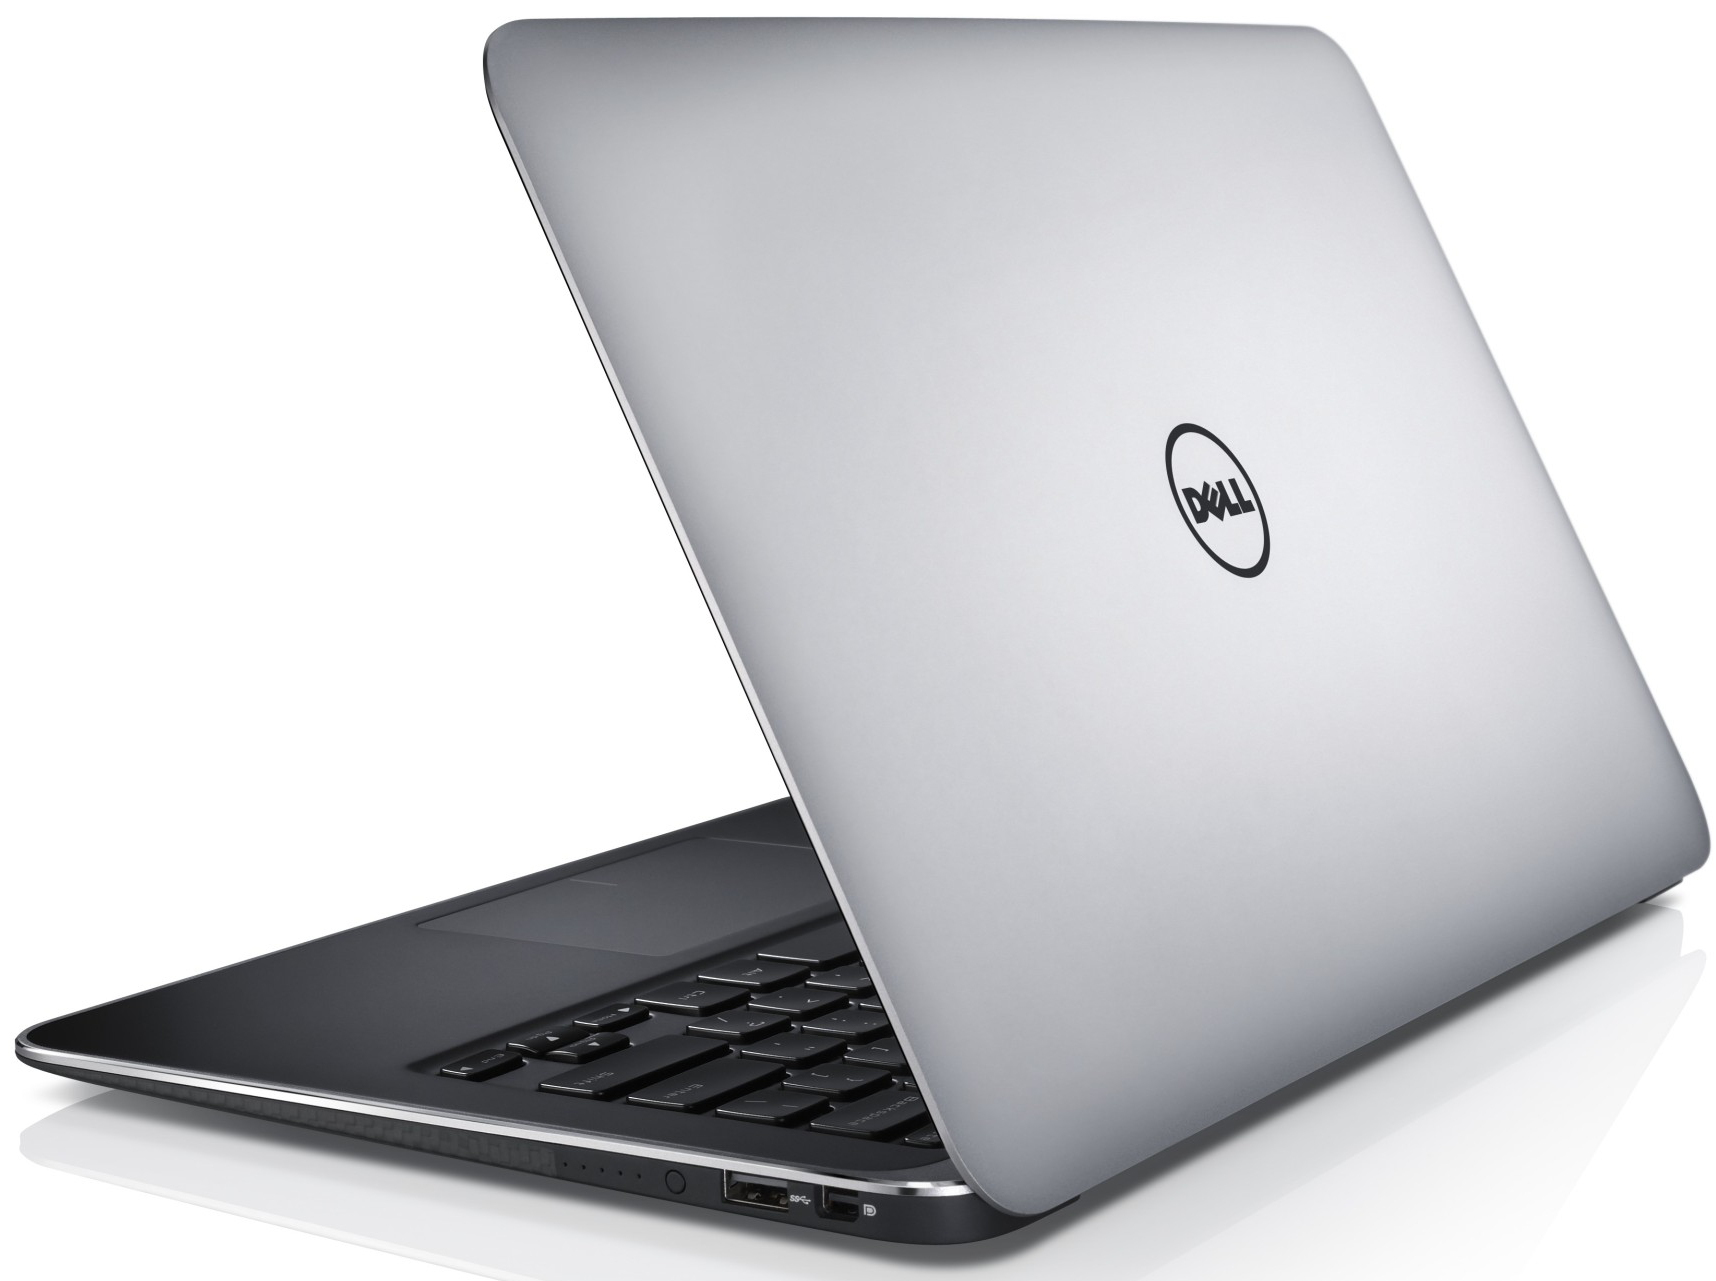 Dell xps 13 ultrabook non touch notebook specifications for Dell xps 13 bureau en gros